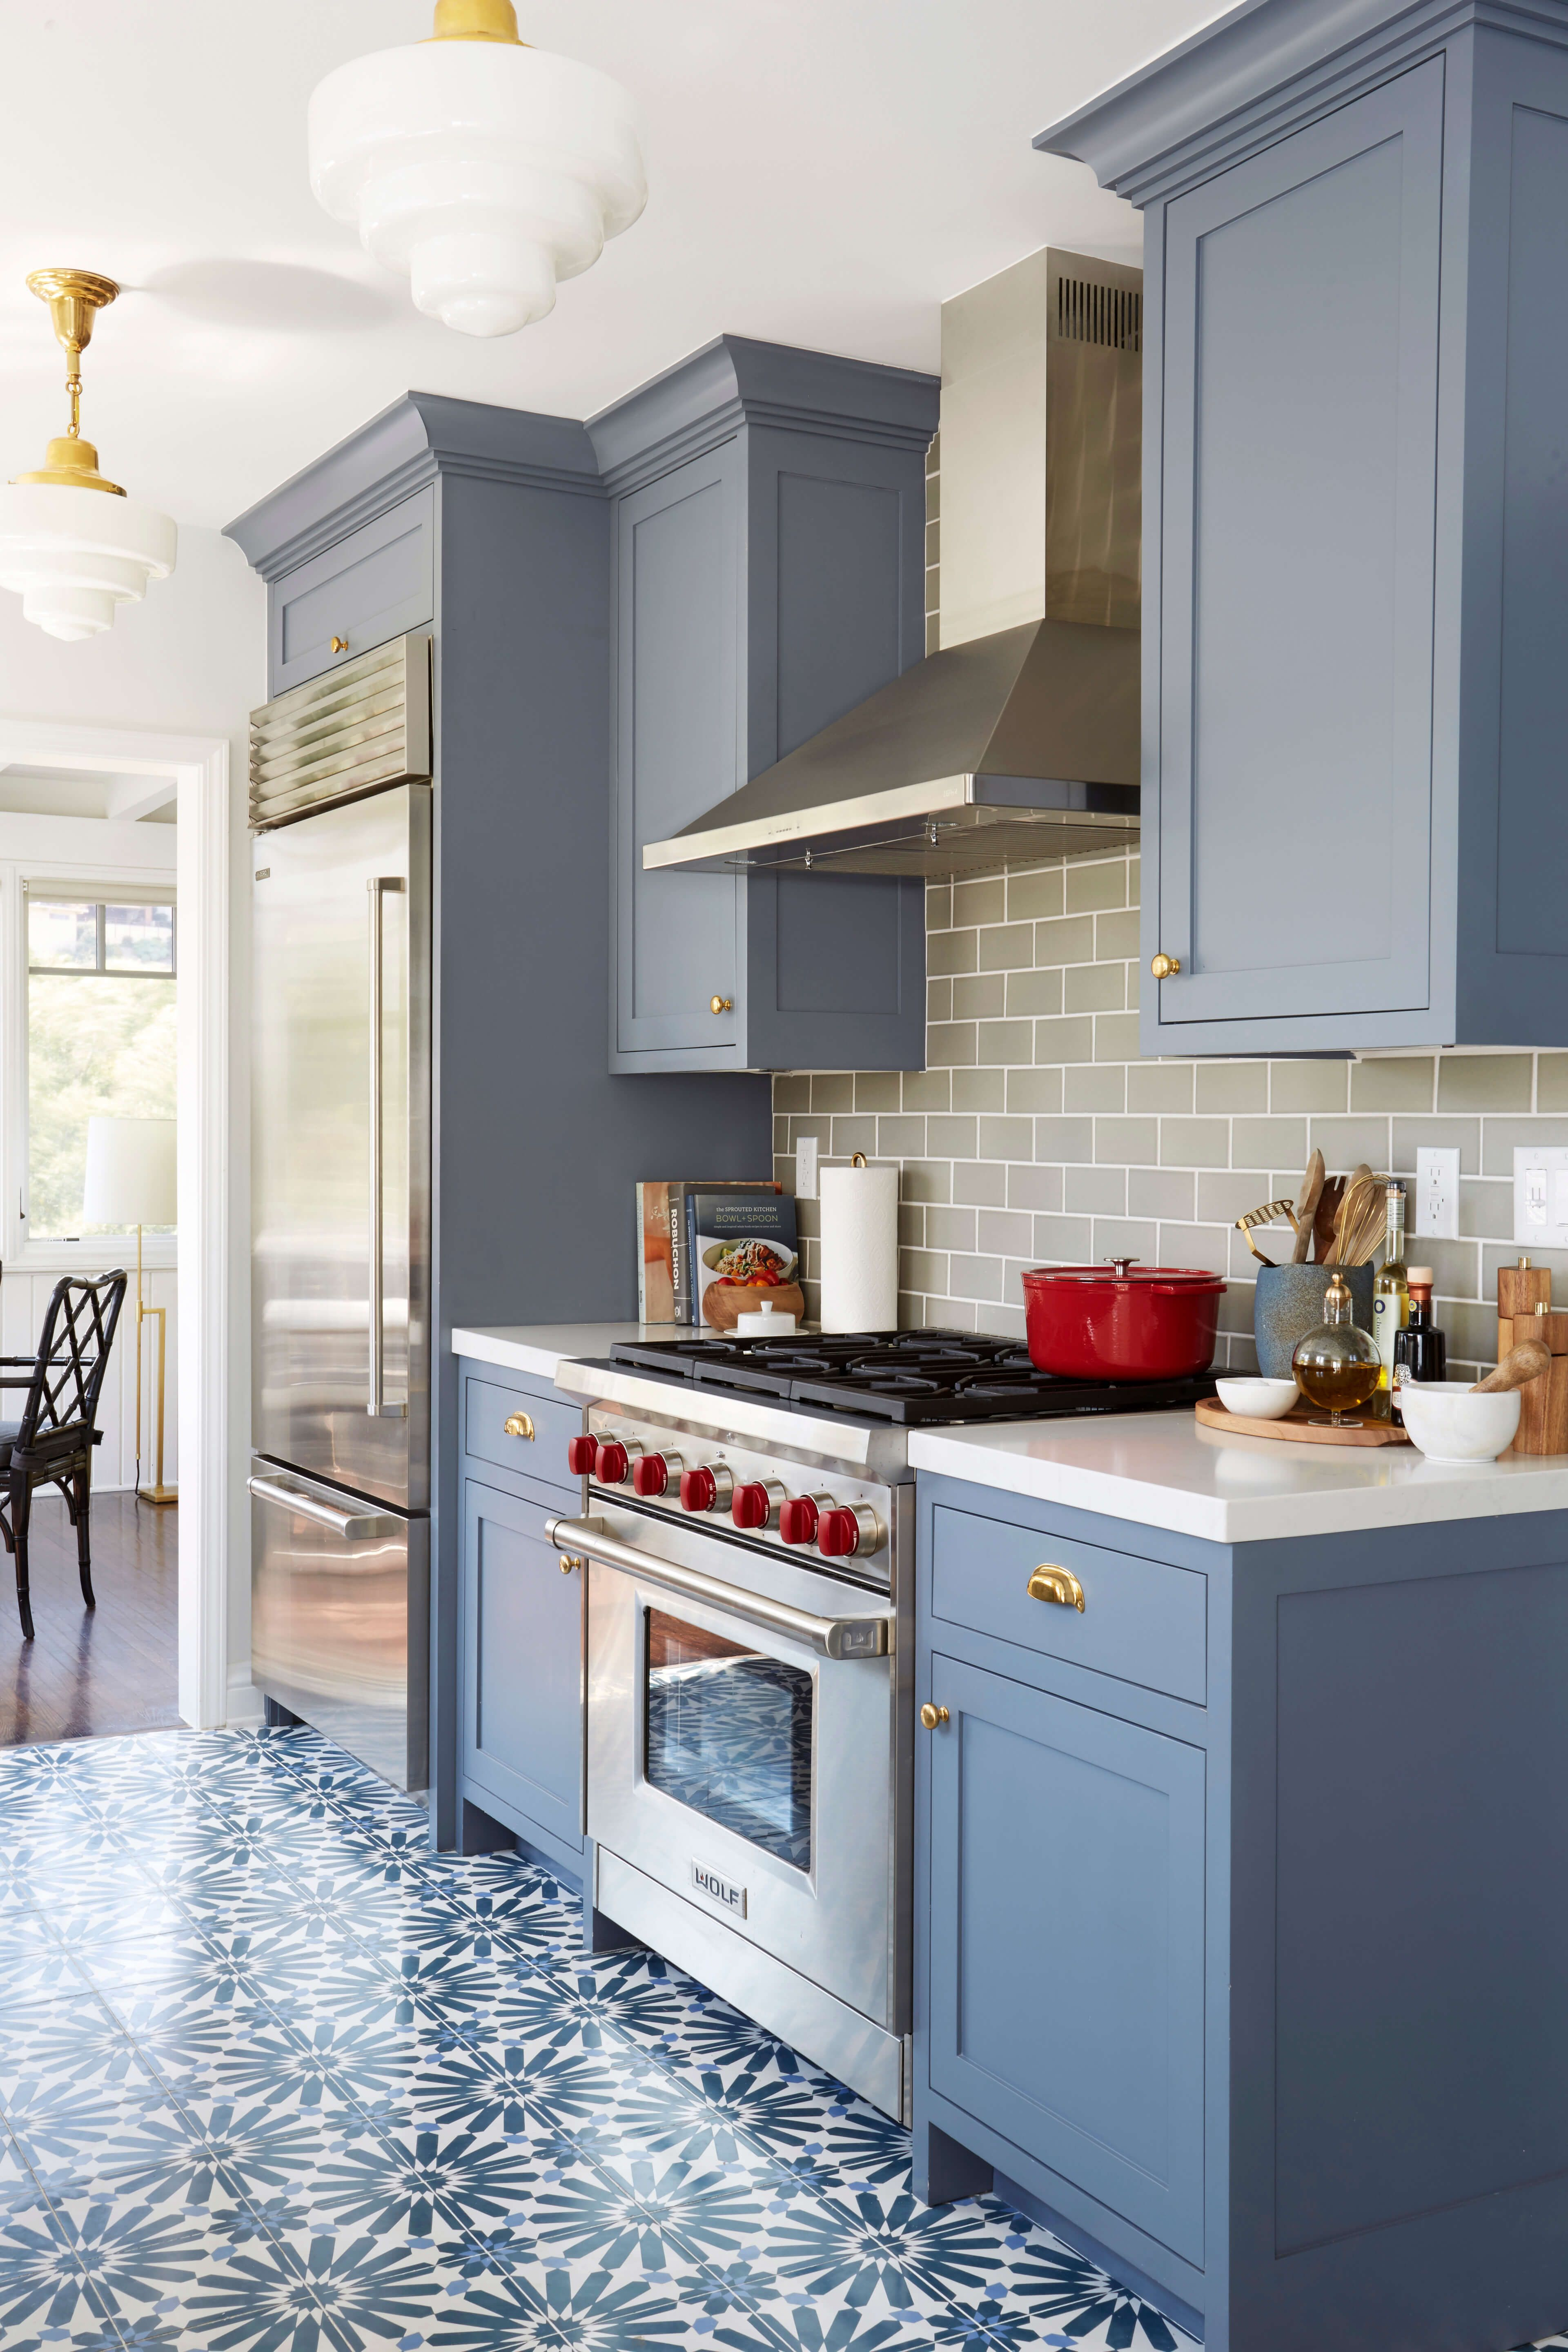 Benjamin Moore Wolf Gray a bluegrey painted kitchen